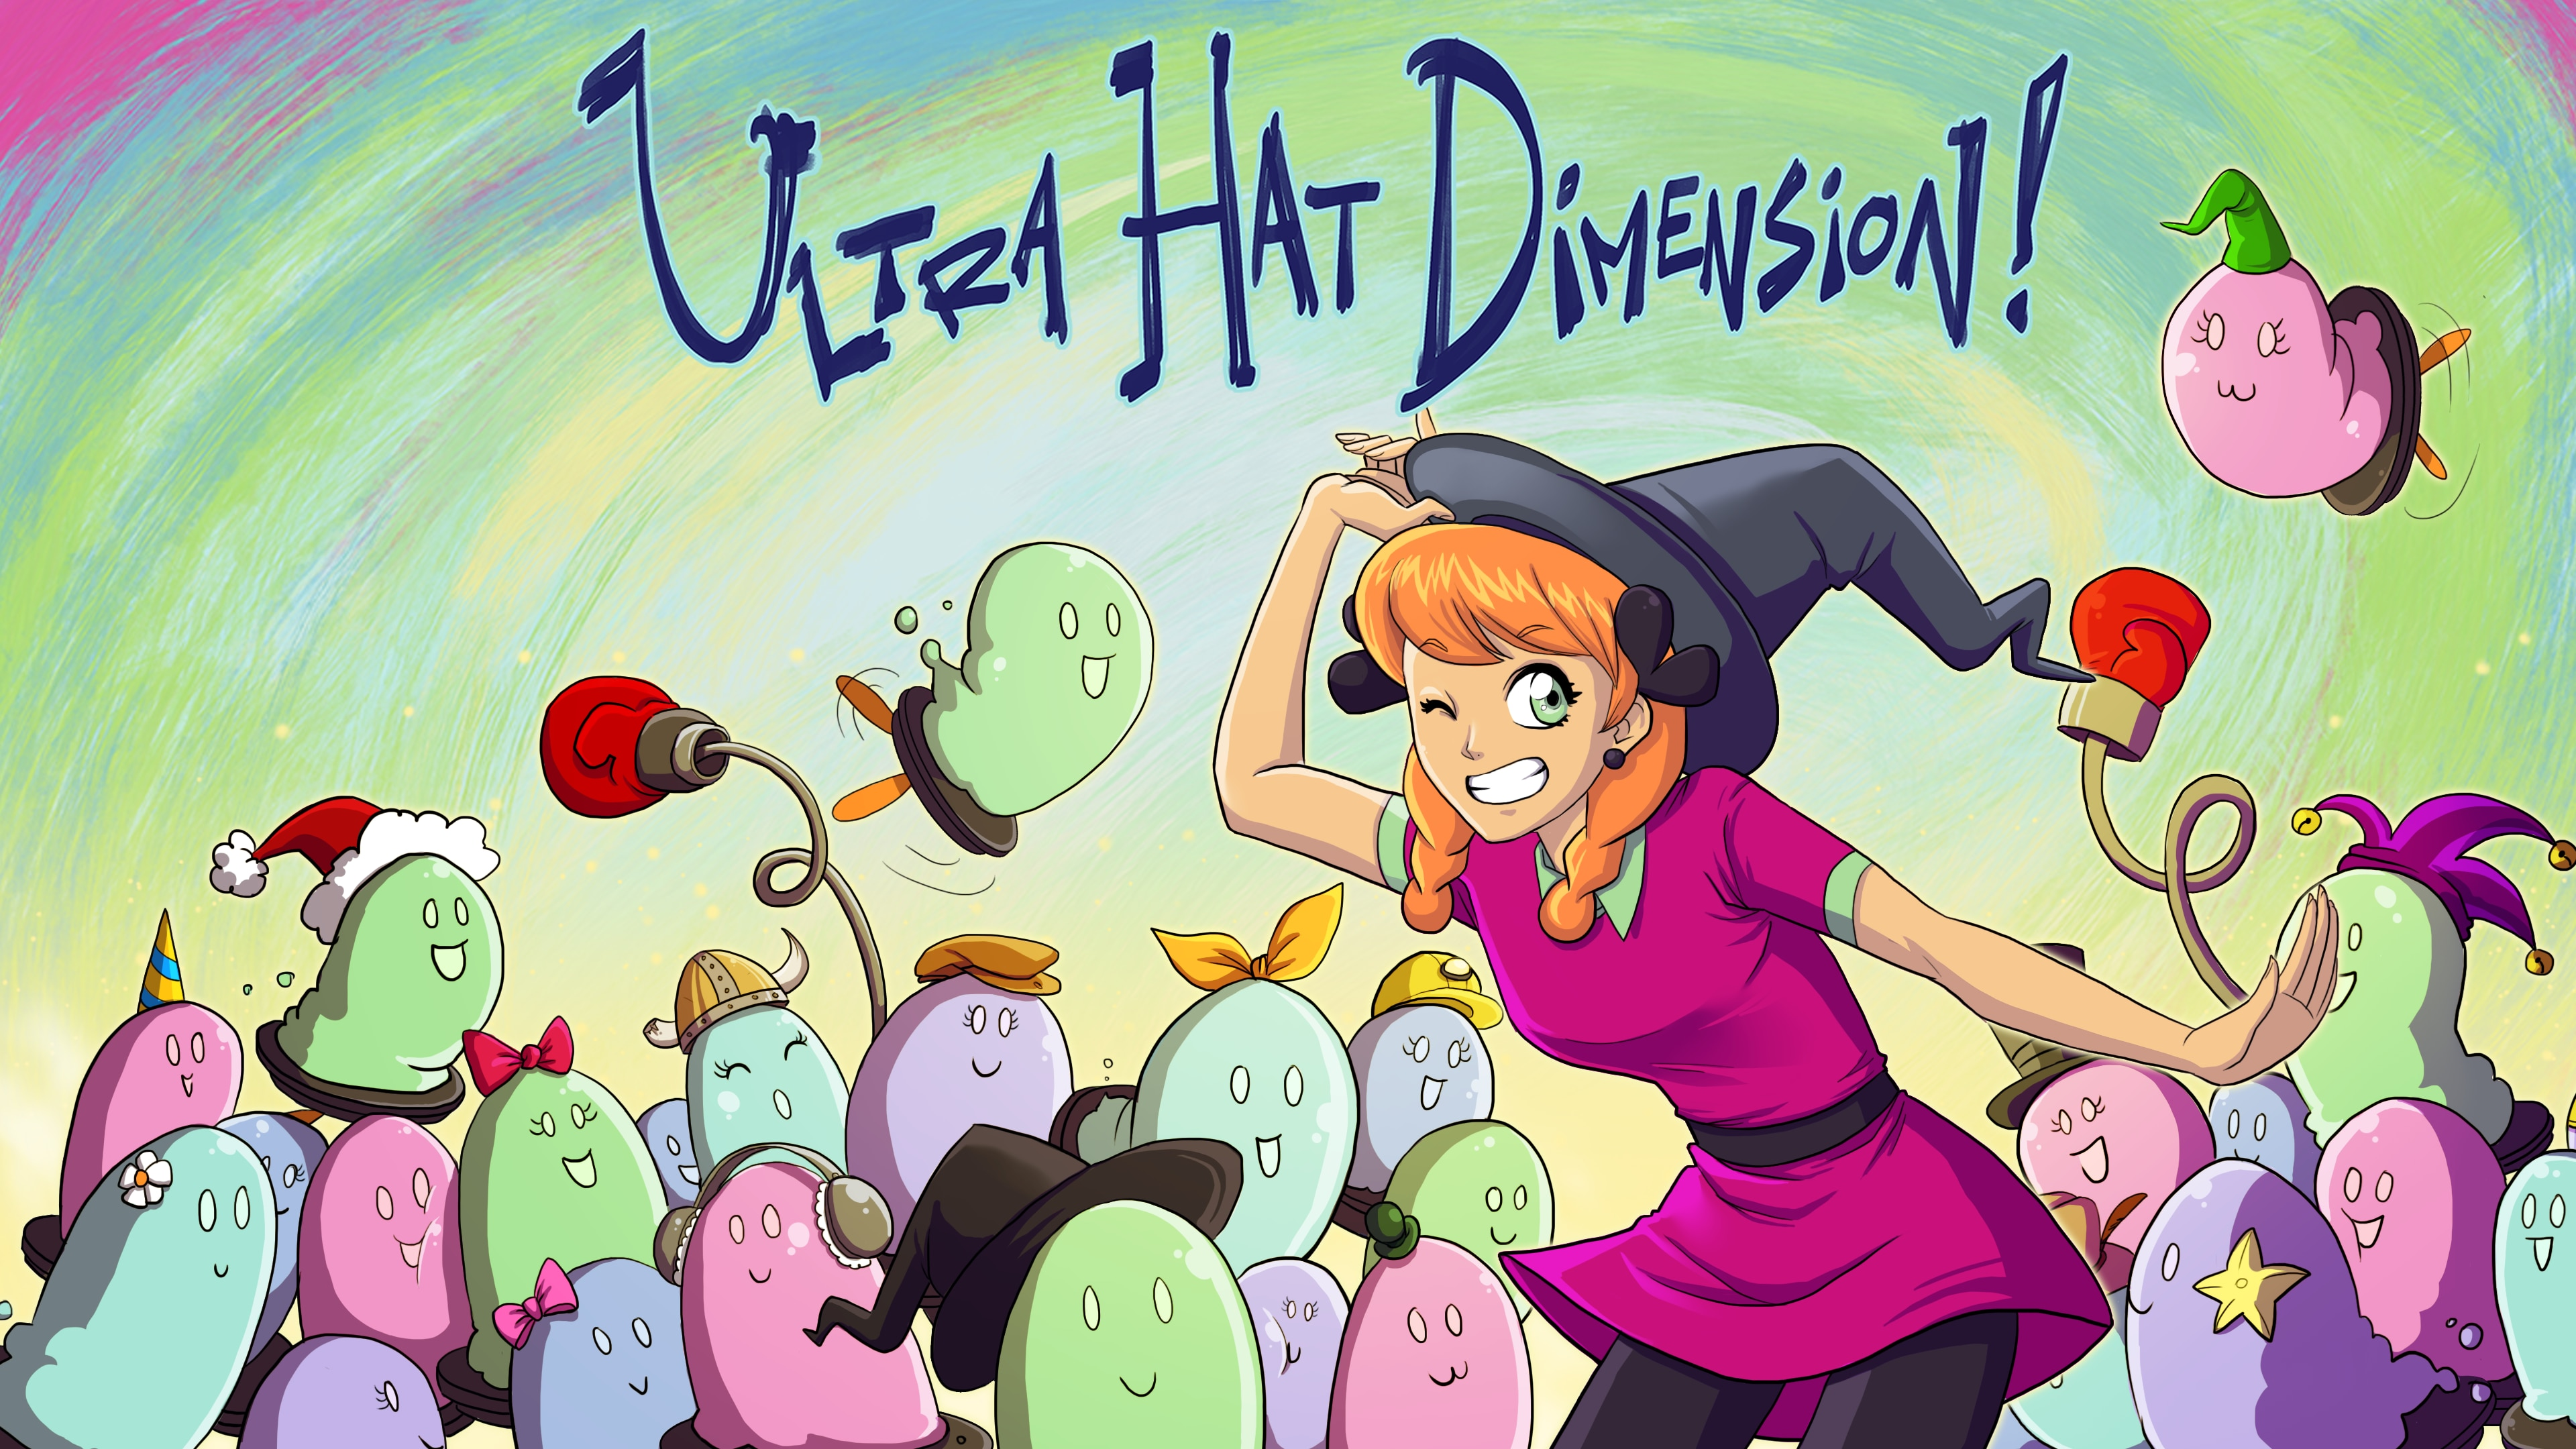 Ultra Hat Dimension (English/Japanese Ver.)